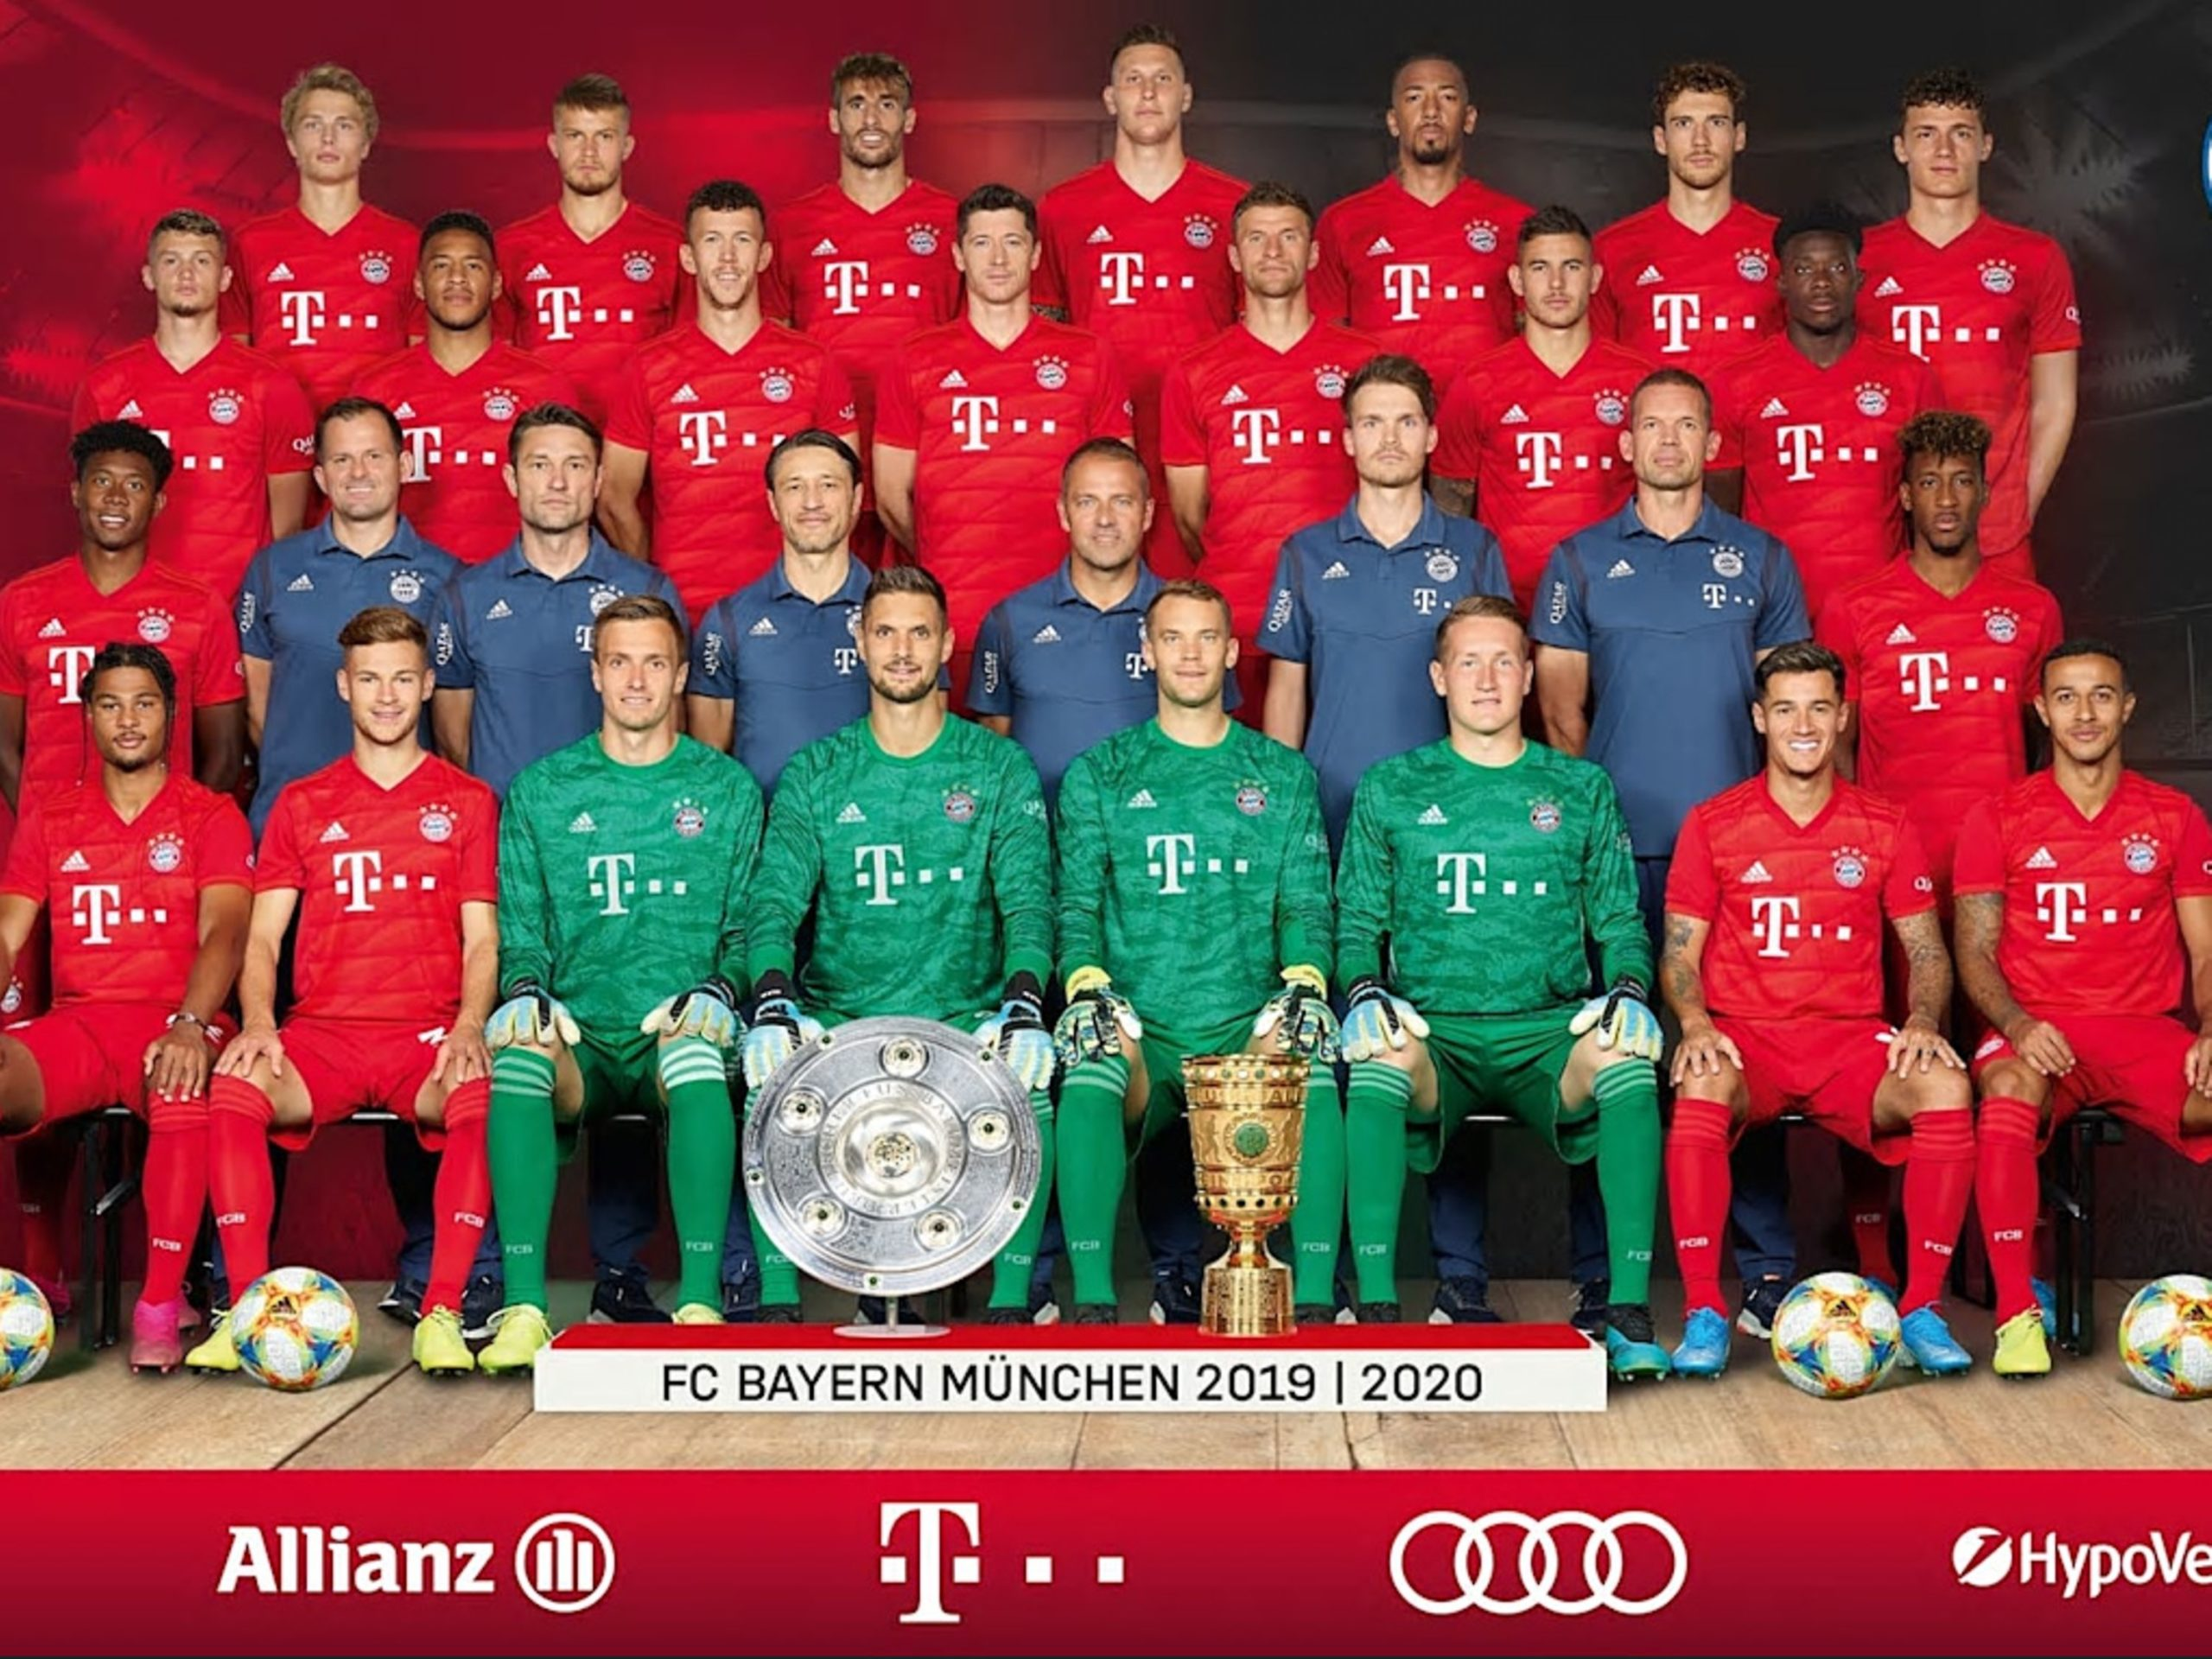 Fc Bayern Munchen History Ownership Squad Members Support Staff And Honors